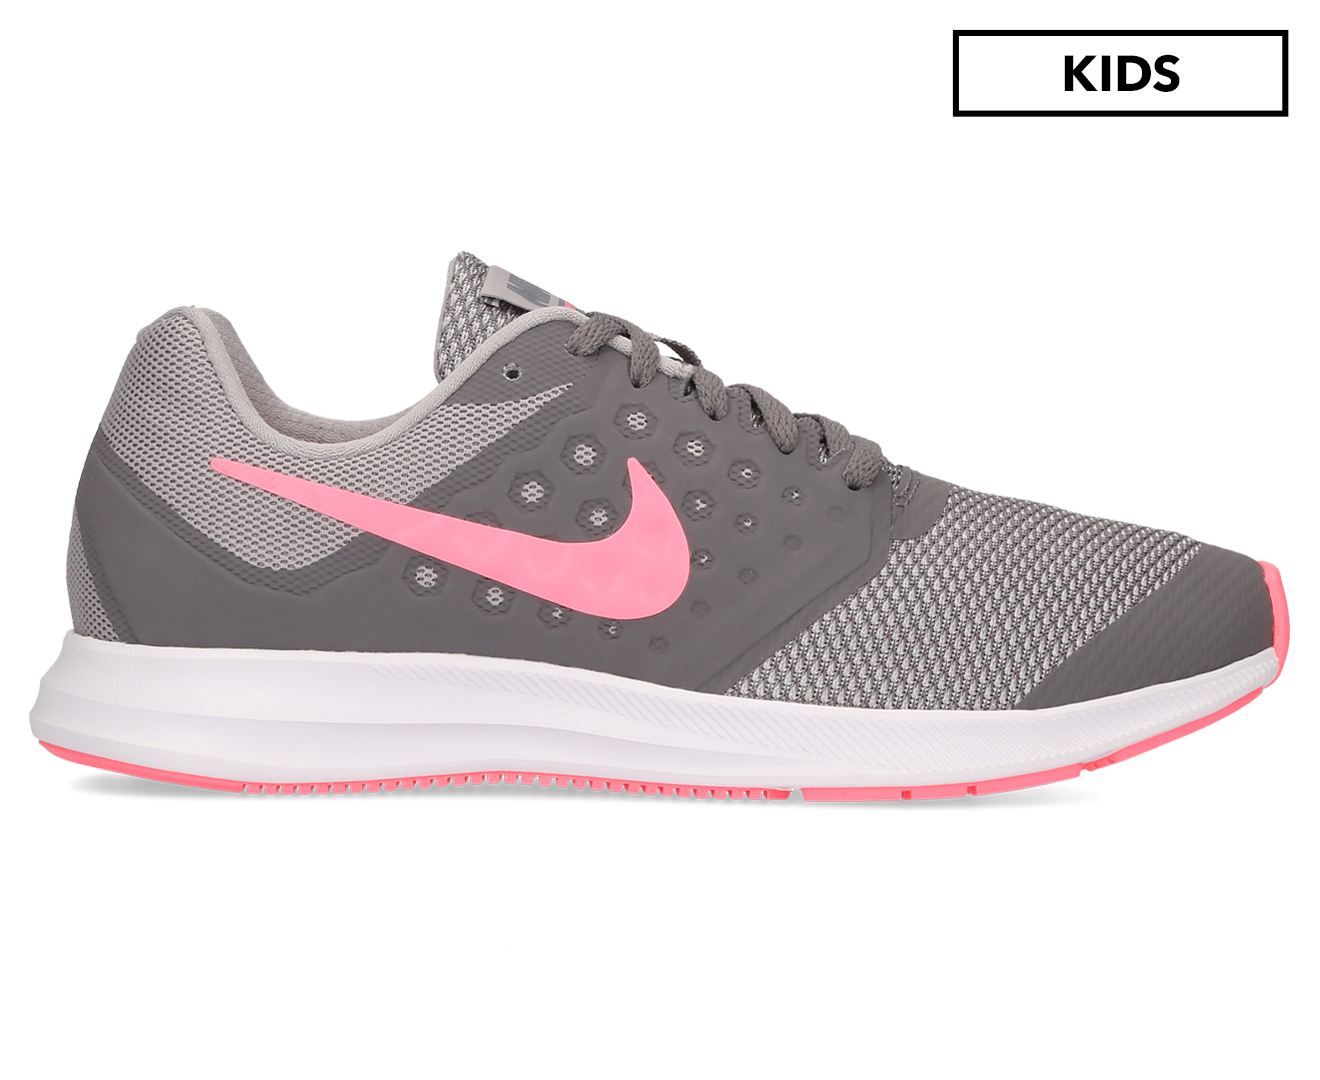 59995a5595af Nike Girls  Grade-School Downshifter 7 Shoe - Gunsmoke Sunset Pulse ...